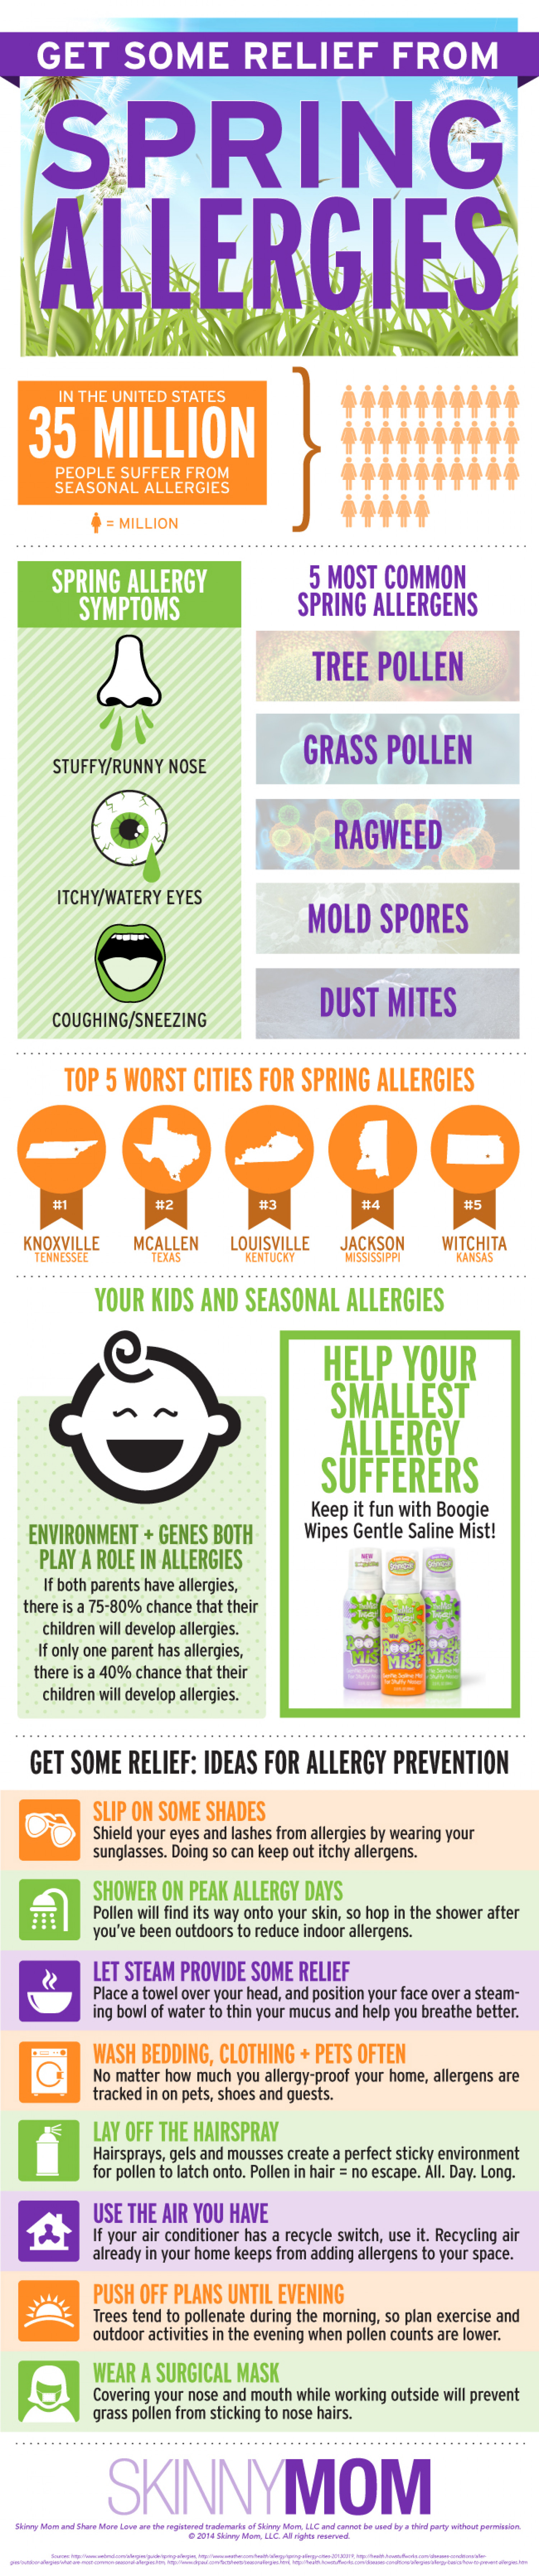 Get Relief From Spring Allergies Infographic